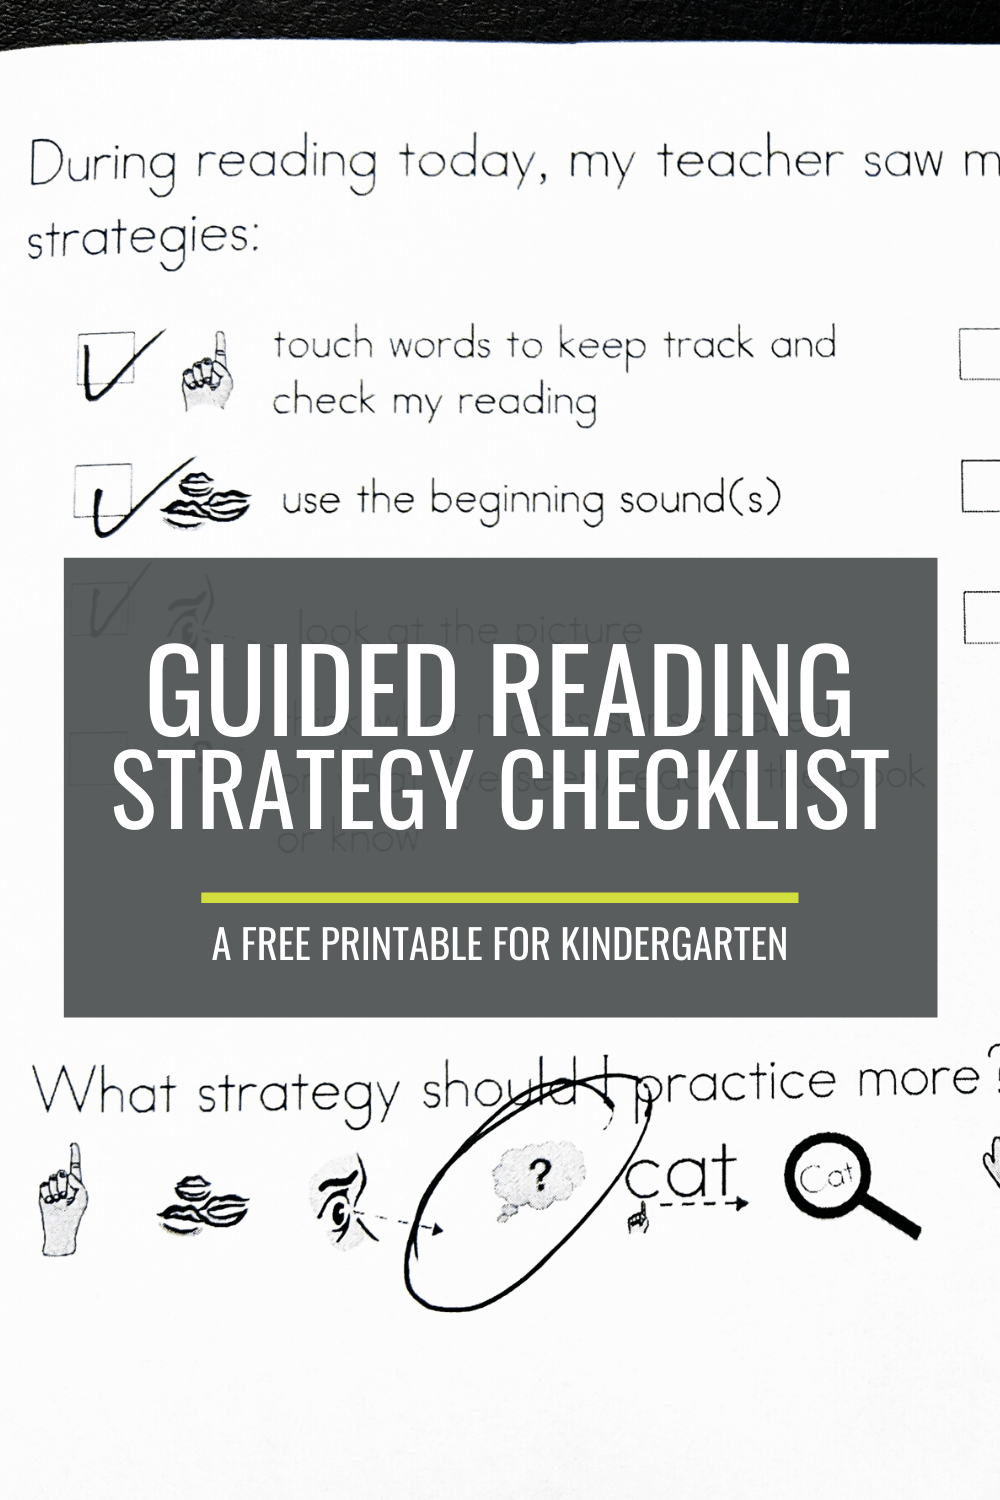 Free Guided Reading Strategy Checklist for Kindergarten